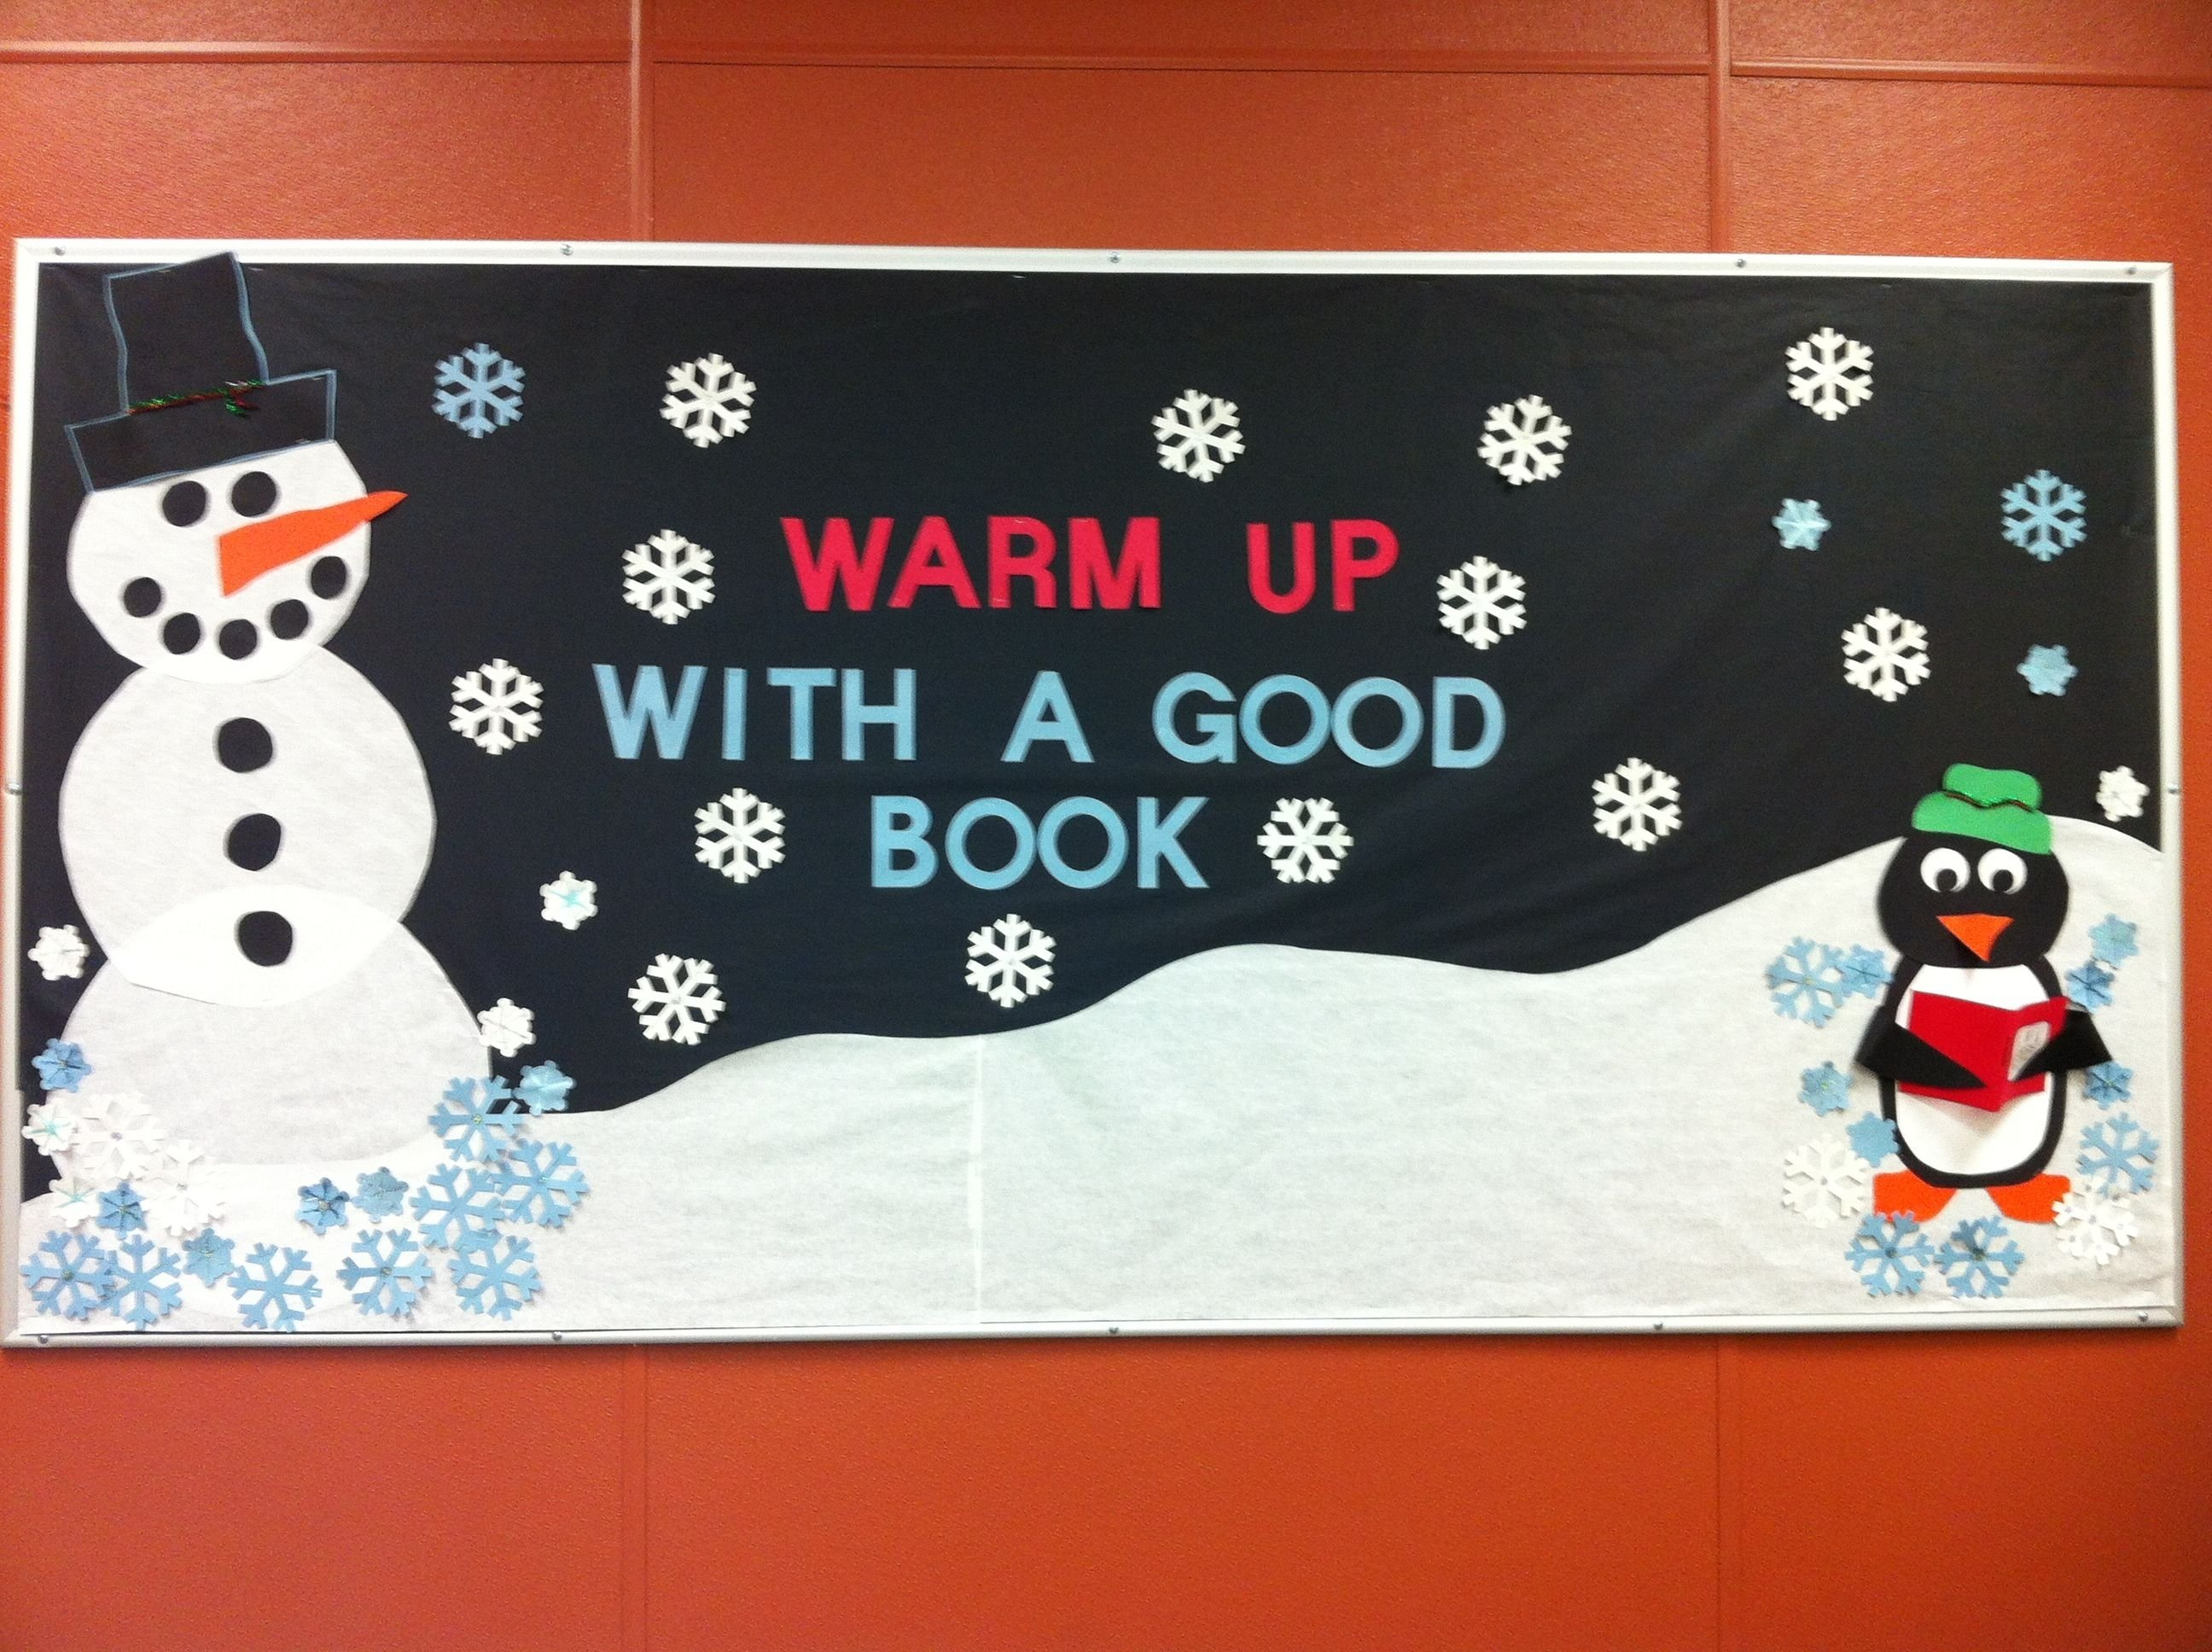 10 Attractive Winter Library Bulletin Board Ideas winter library bulletin board library display ideas pinterest 2020